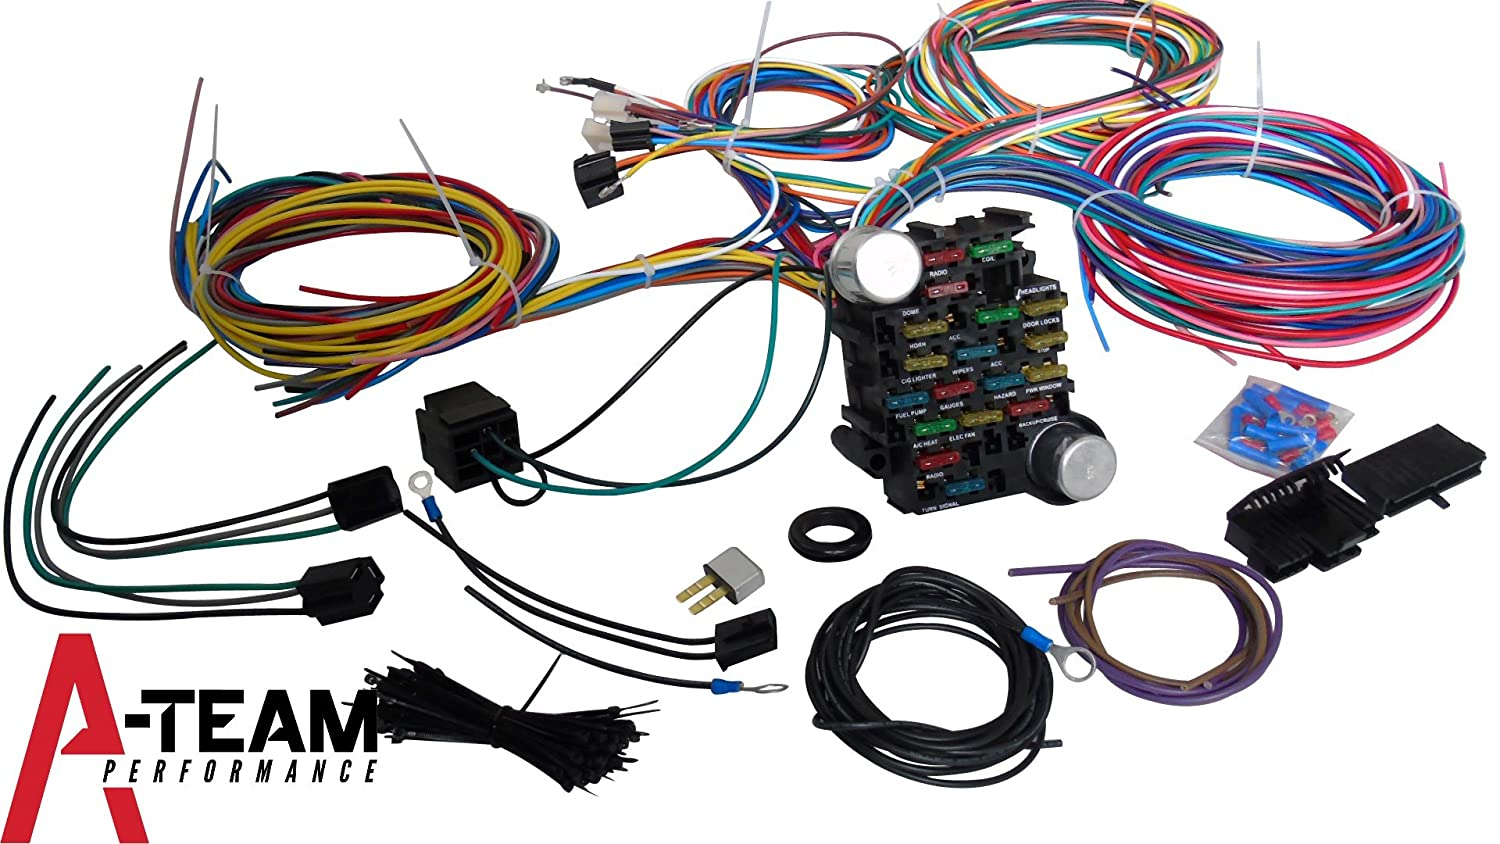 Amazon.com: A-Team Performance 21 Standard Circuit Universal Wiring Harness  Kit Muscle Car Hot Rod XL Wire: Automotive